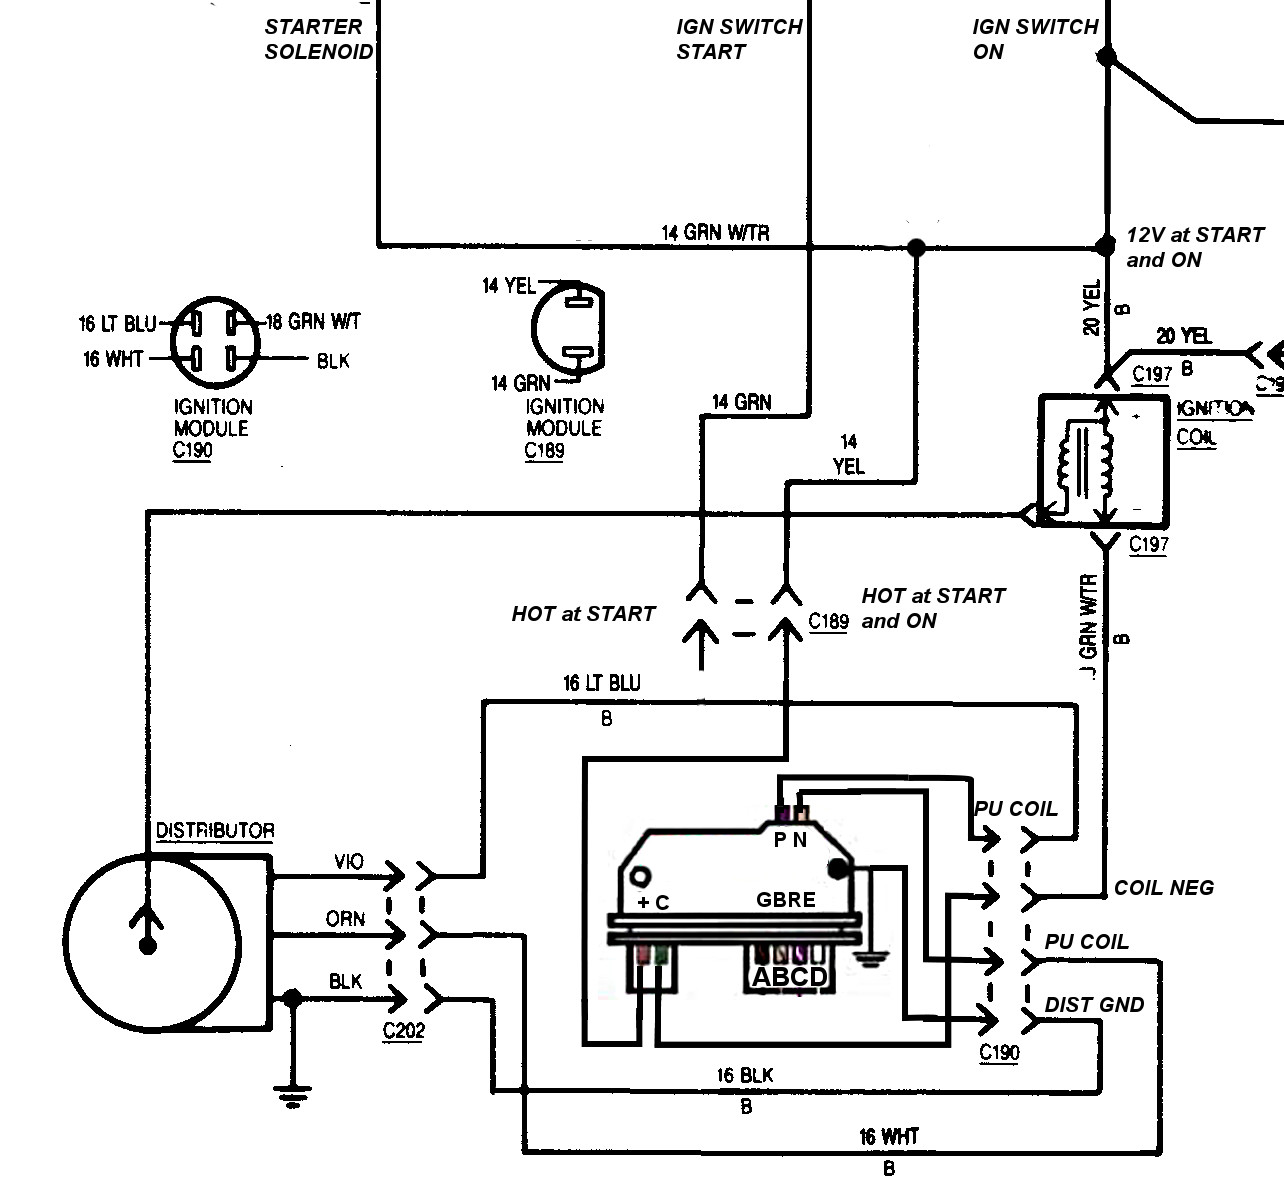 C Fuse Box Wirning Diagrams Ford F Cigarette Lighter Wiring Diagram Byblank 2004 250 in addition Buick Lacrosse Cxs My Cigarette Lighter And My Auxillary Power With Regard To 2006 Buick Lacrosse Fuse Box further 91 F150 Power Door Lock Relay Location further Freightliner Fuse Box Diagram besides 51u7l Pontiac Grand Se Four Wires Starter. on buick century fuse box